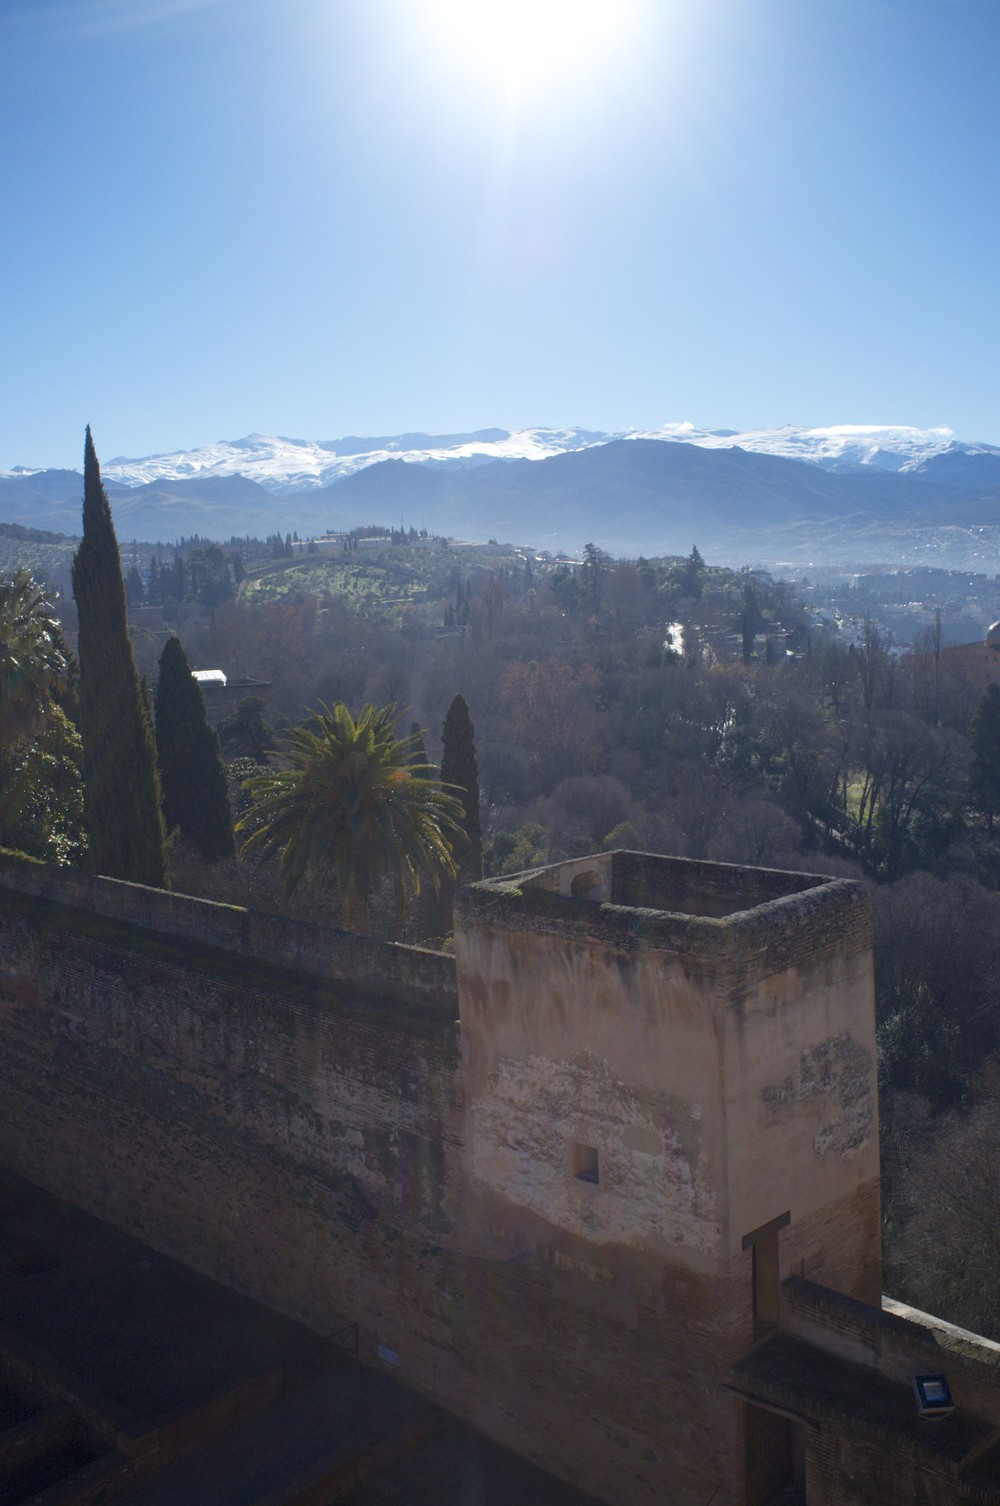 View on the Sierra Nevada from Alhambra (as seen on the 5th of February, 2014)